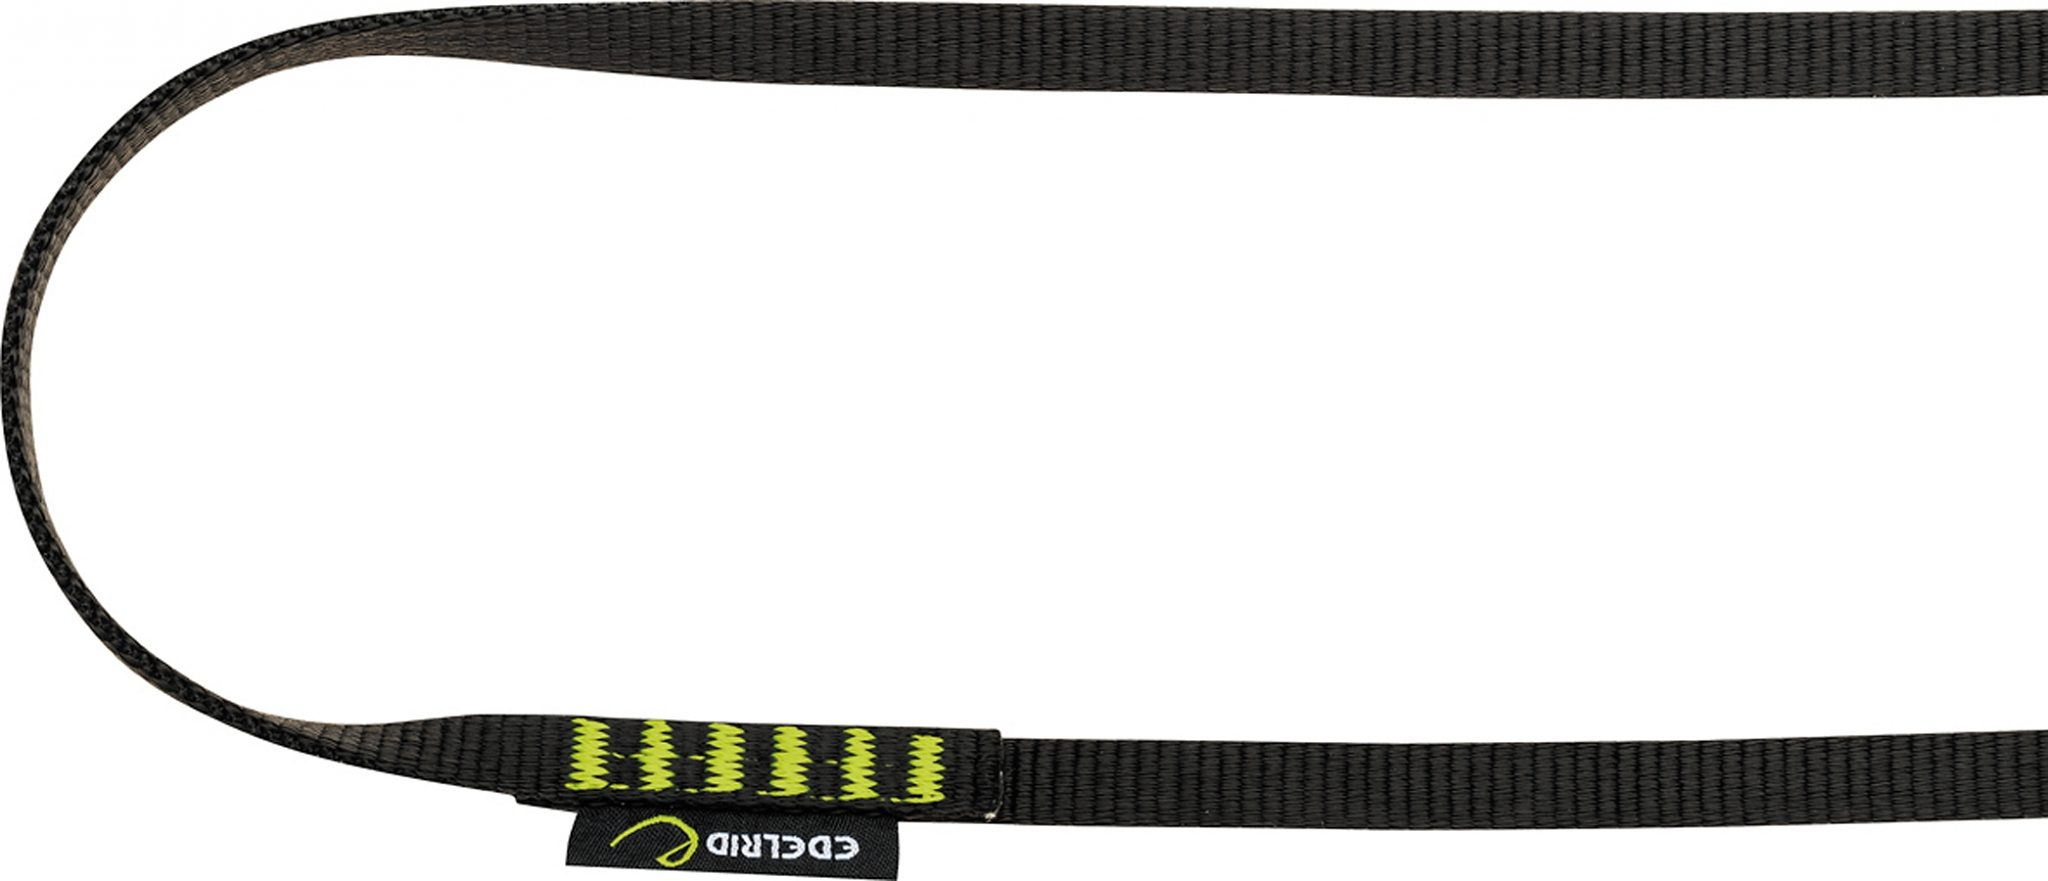 Edelrid Outdoor-Equipment »Tec Web Sling 12mm 90cm«